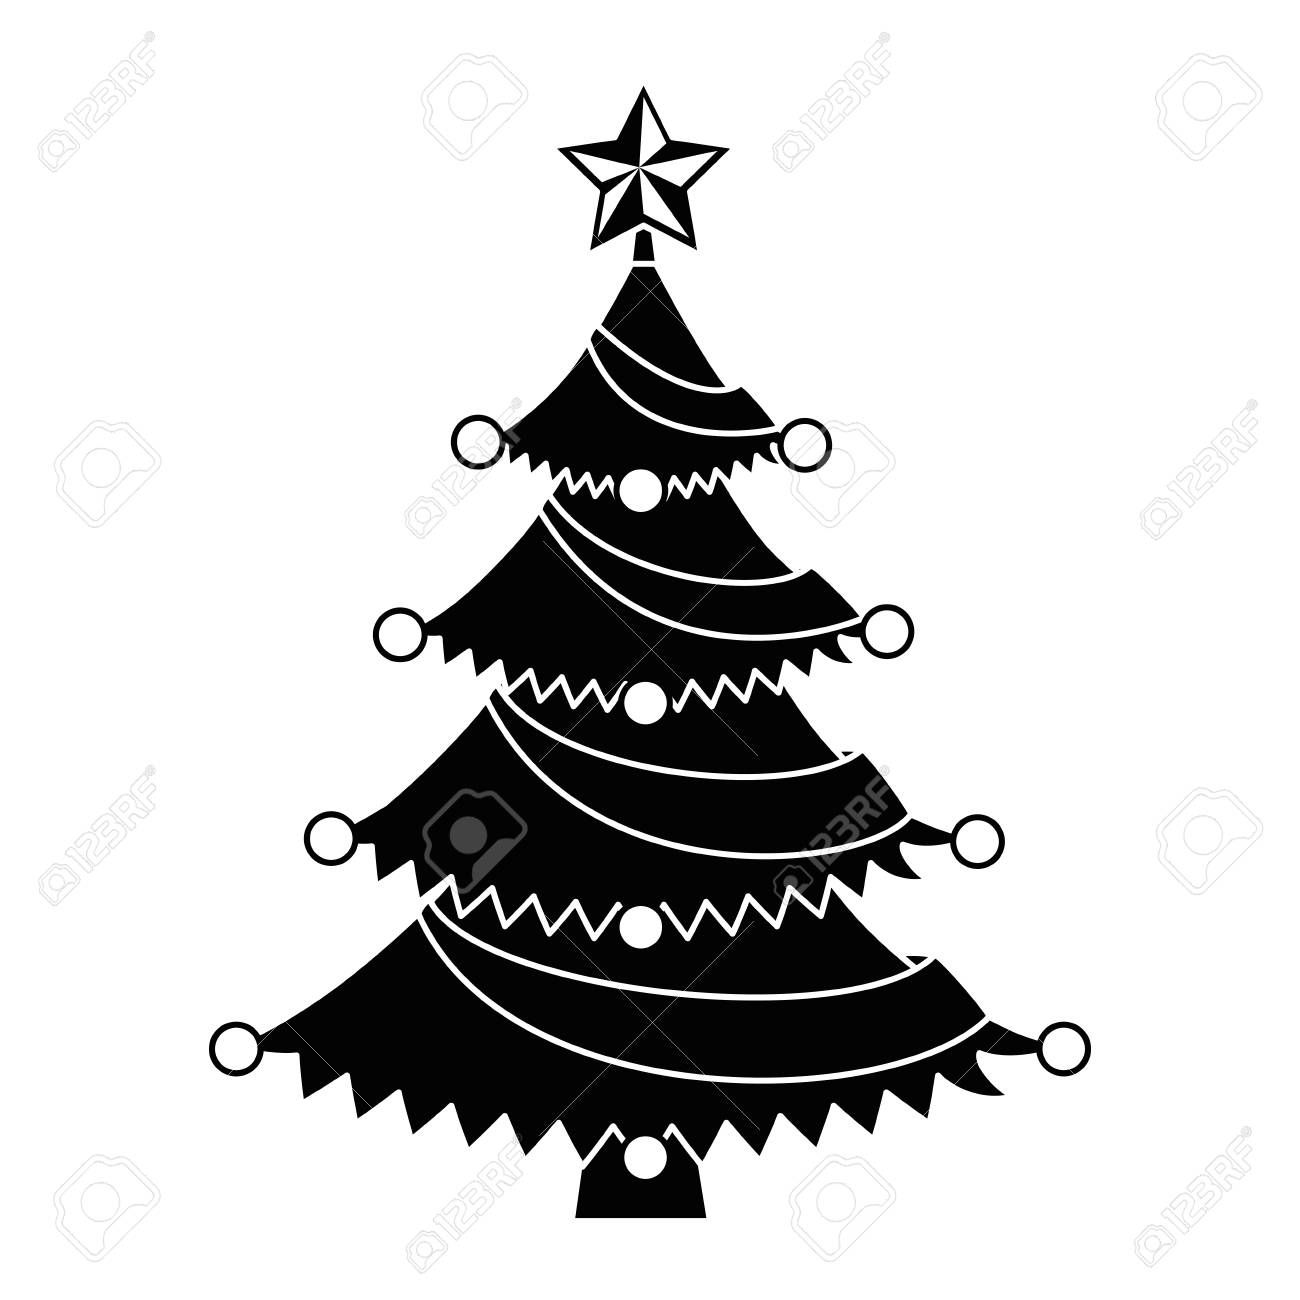 Merry Christmas Tree With Star Vector Illustration Design Aff Tree Christmas Merry Star Desig Vector Illustration Design Illustration Design Merry